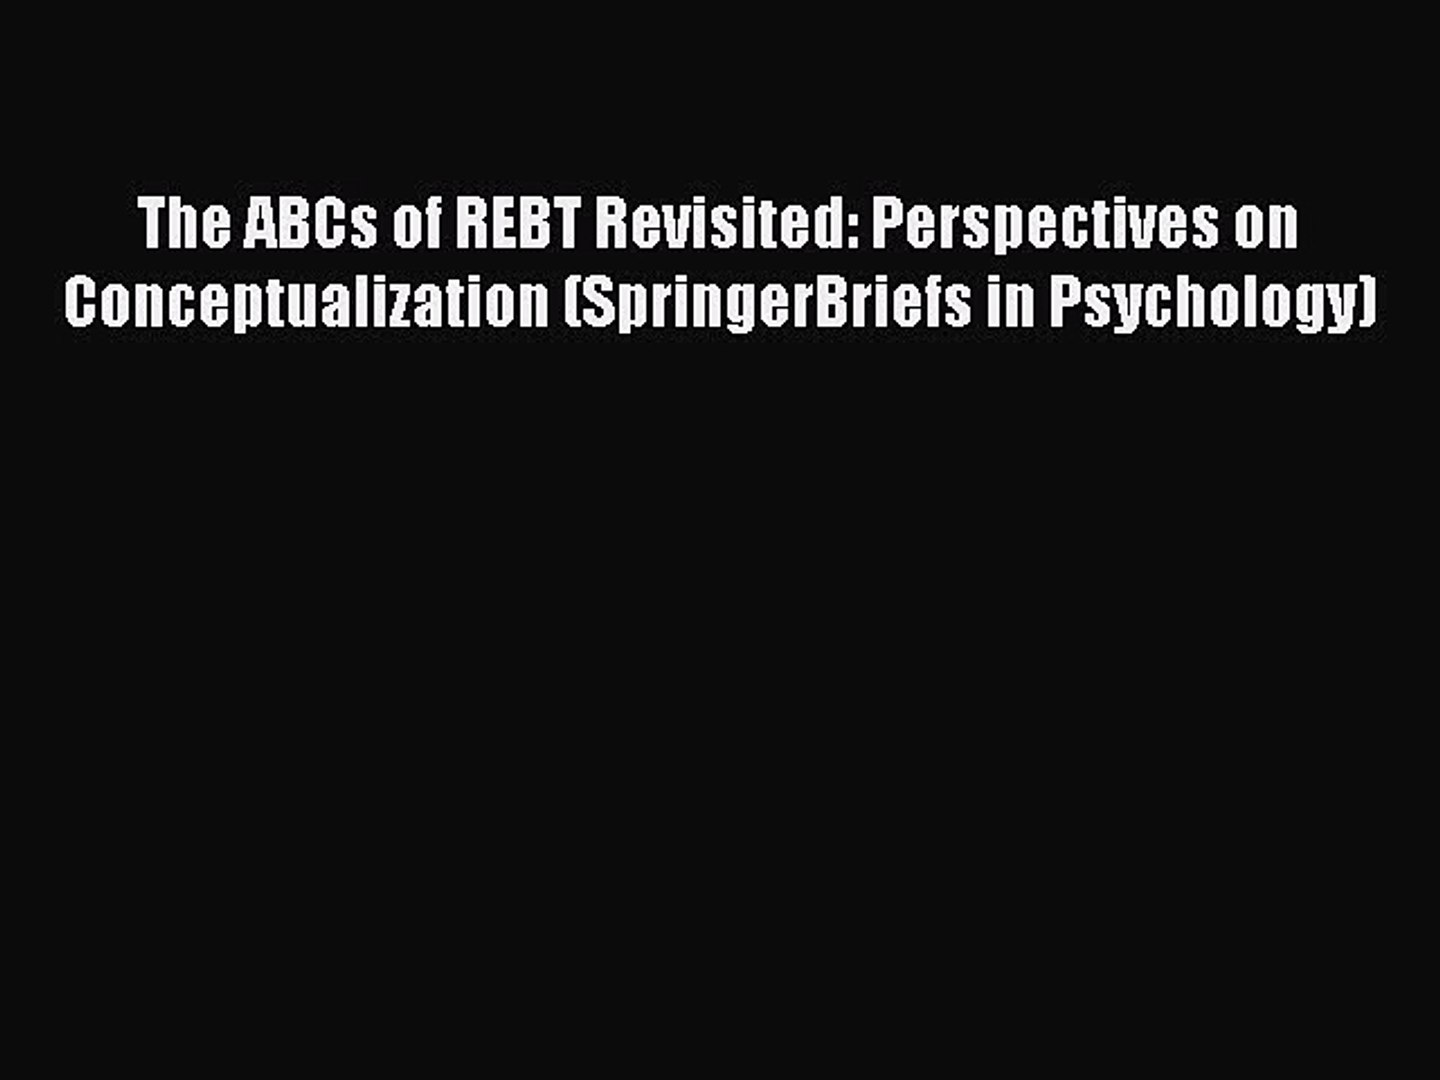 The ABCs of REBT Revisited: Perspectives on Conceptualization (SpringerBriefs in Psychology)